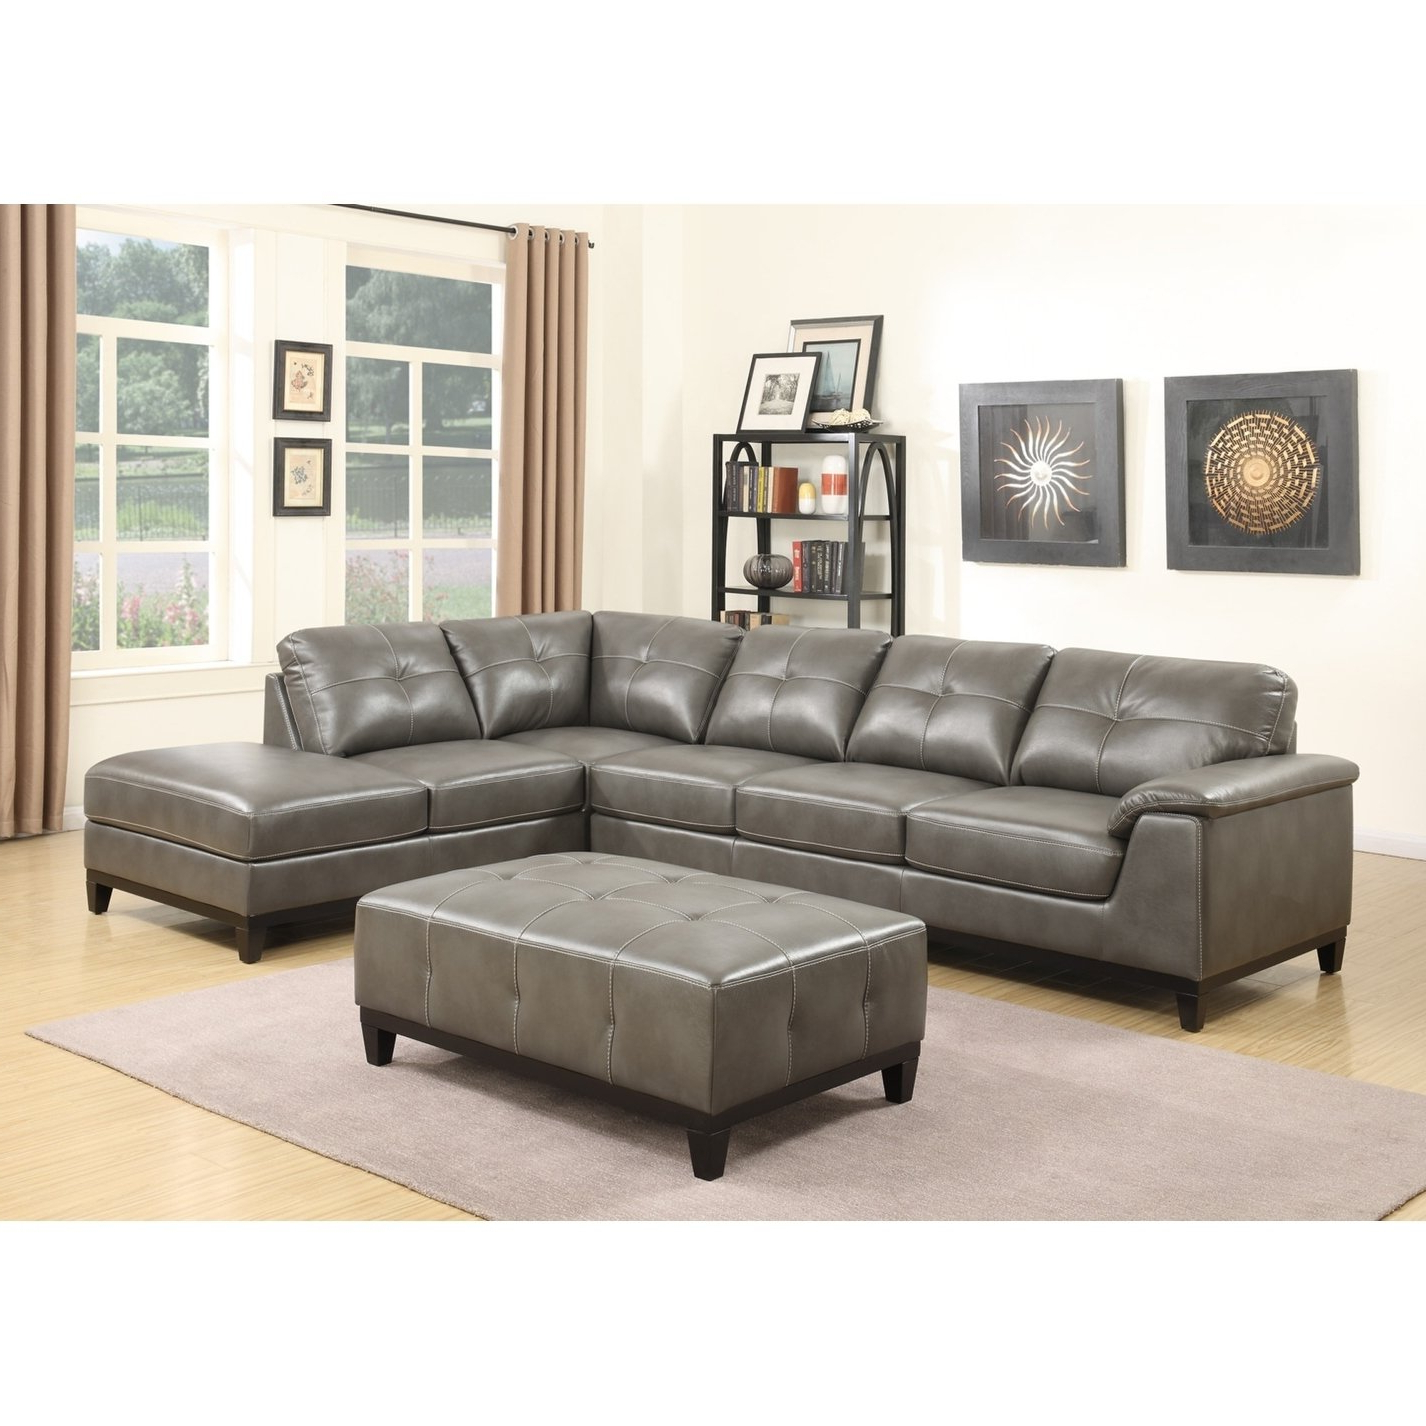 Shop Copper Grove Kinglake 2 Piece Sectional And Ottoman – On Sale Inside Fashionable Haven 3 Piece Sectionals (View 8 of 20)